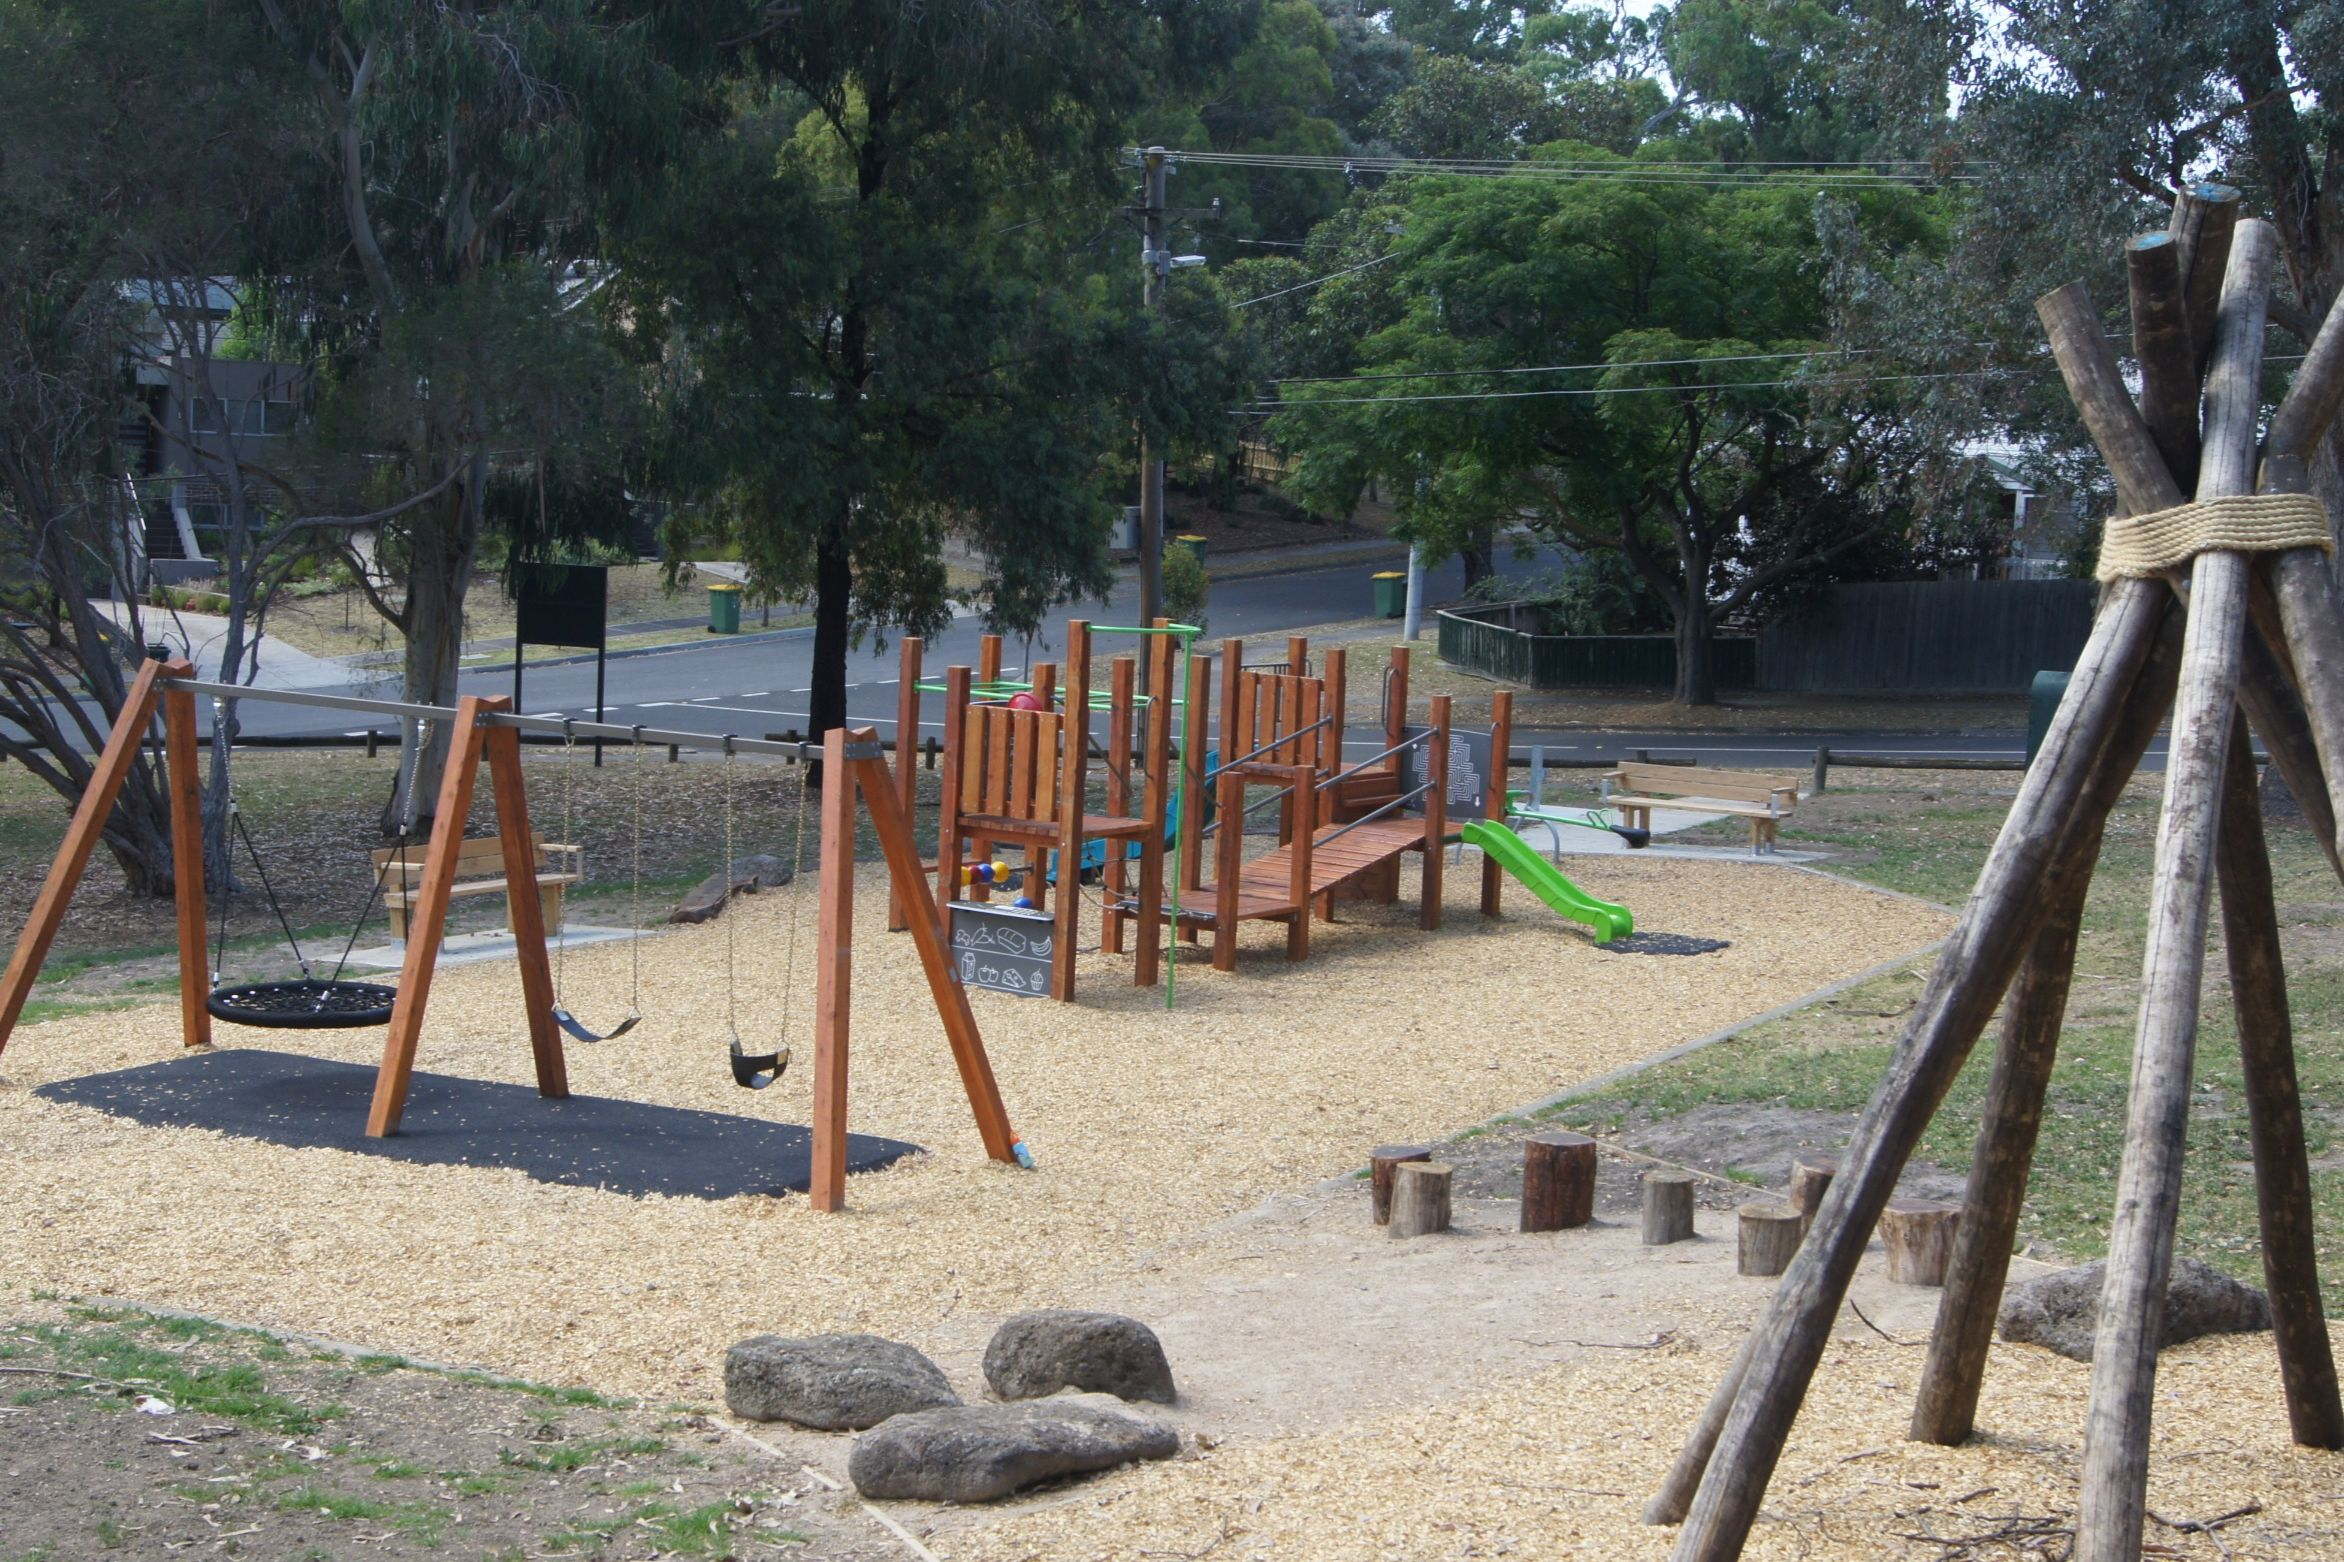 After: Image of playground at Woodlands Park after replacement